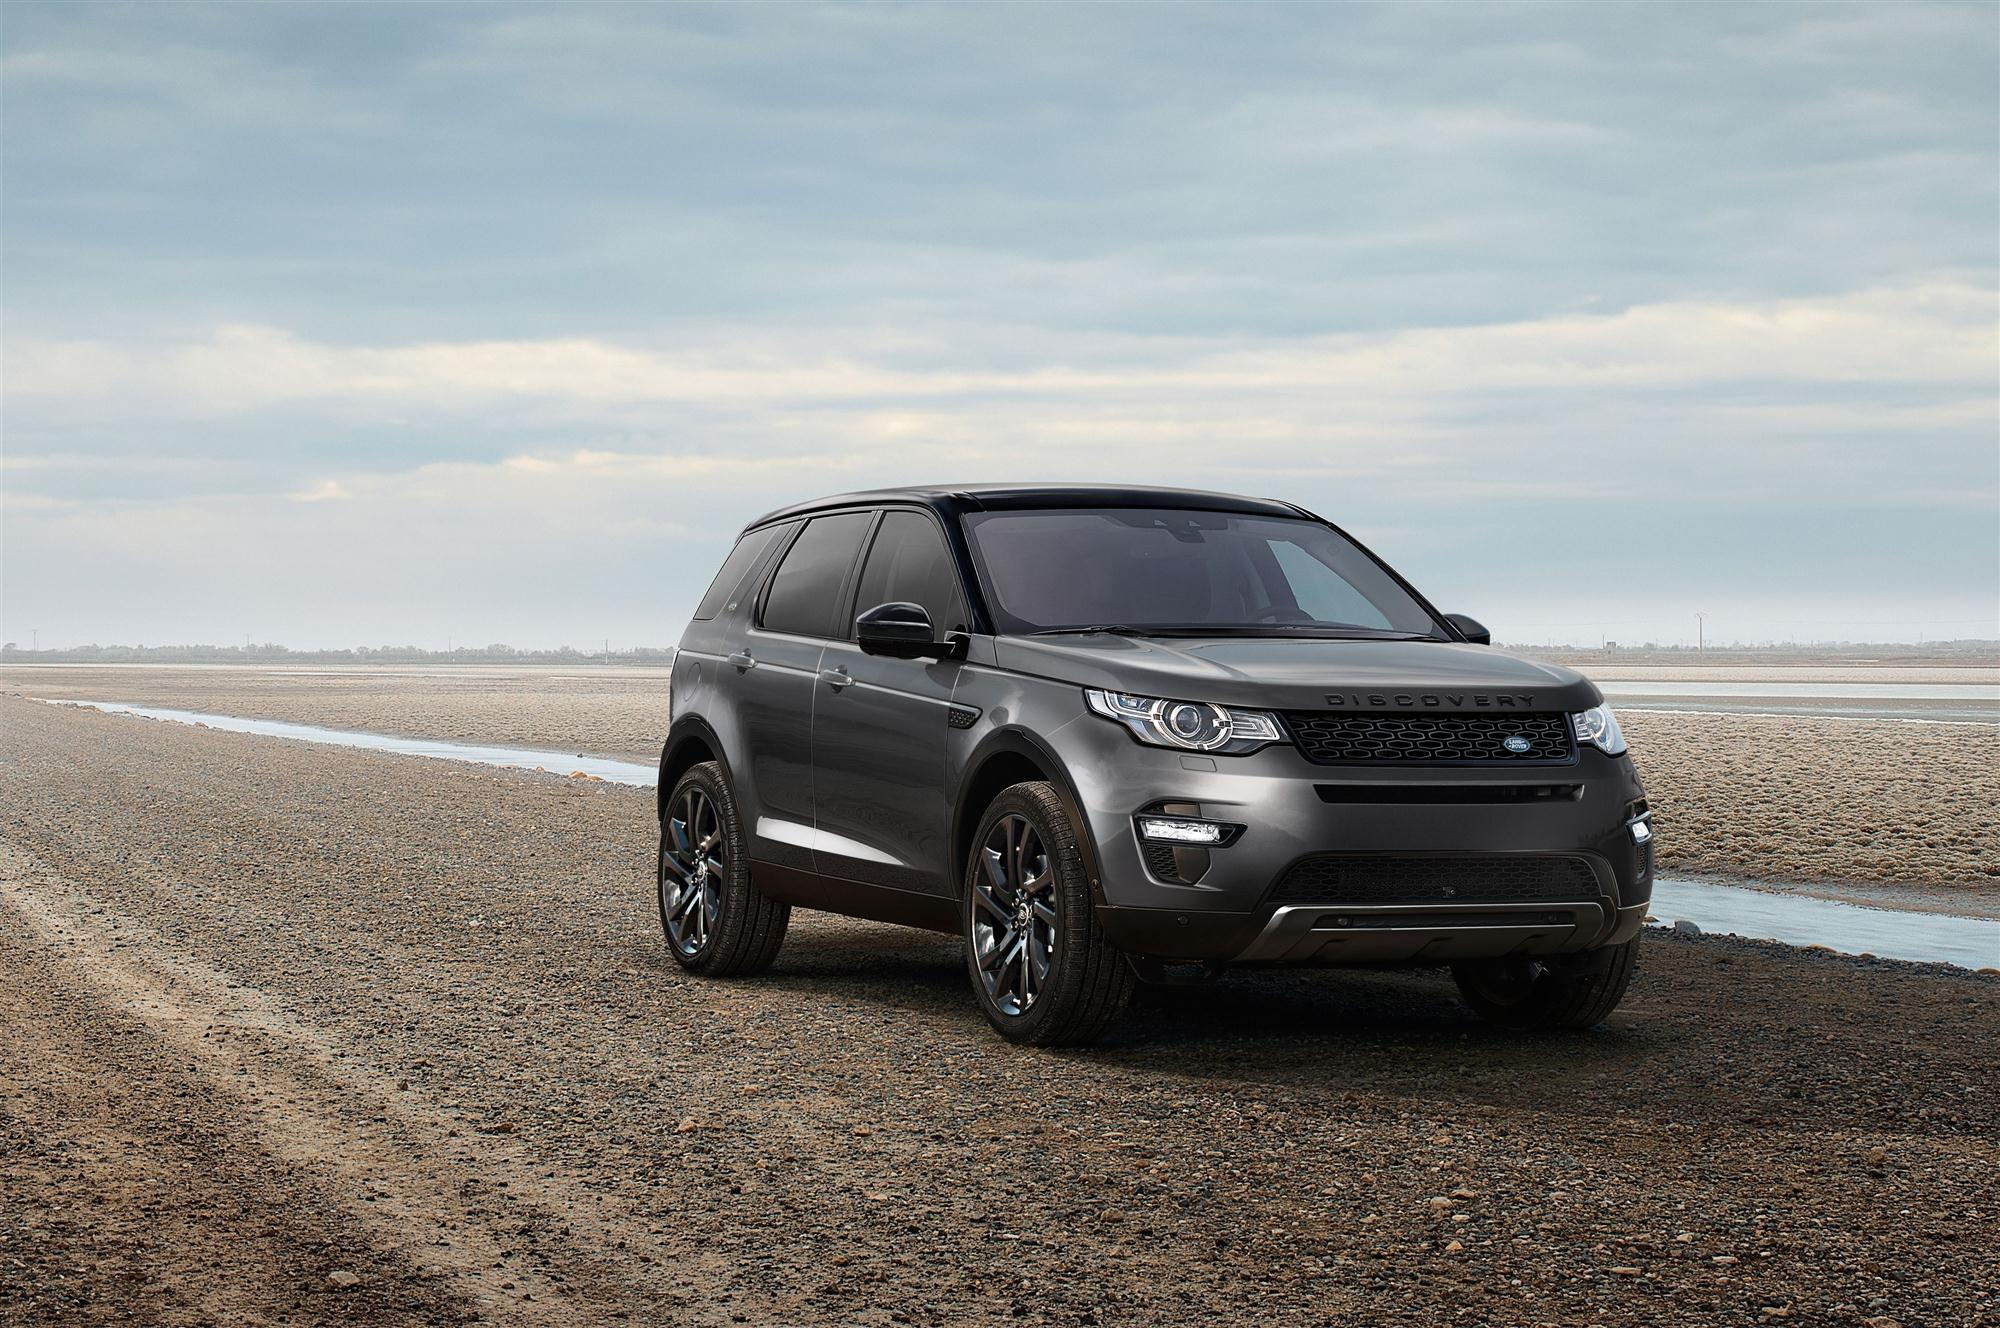 2018 Land Rover Discovery Sport review